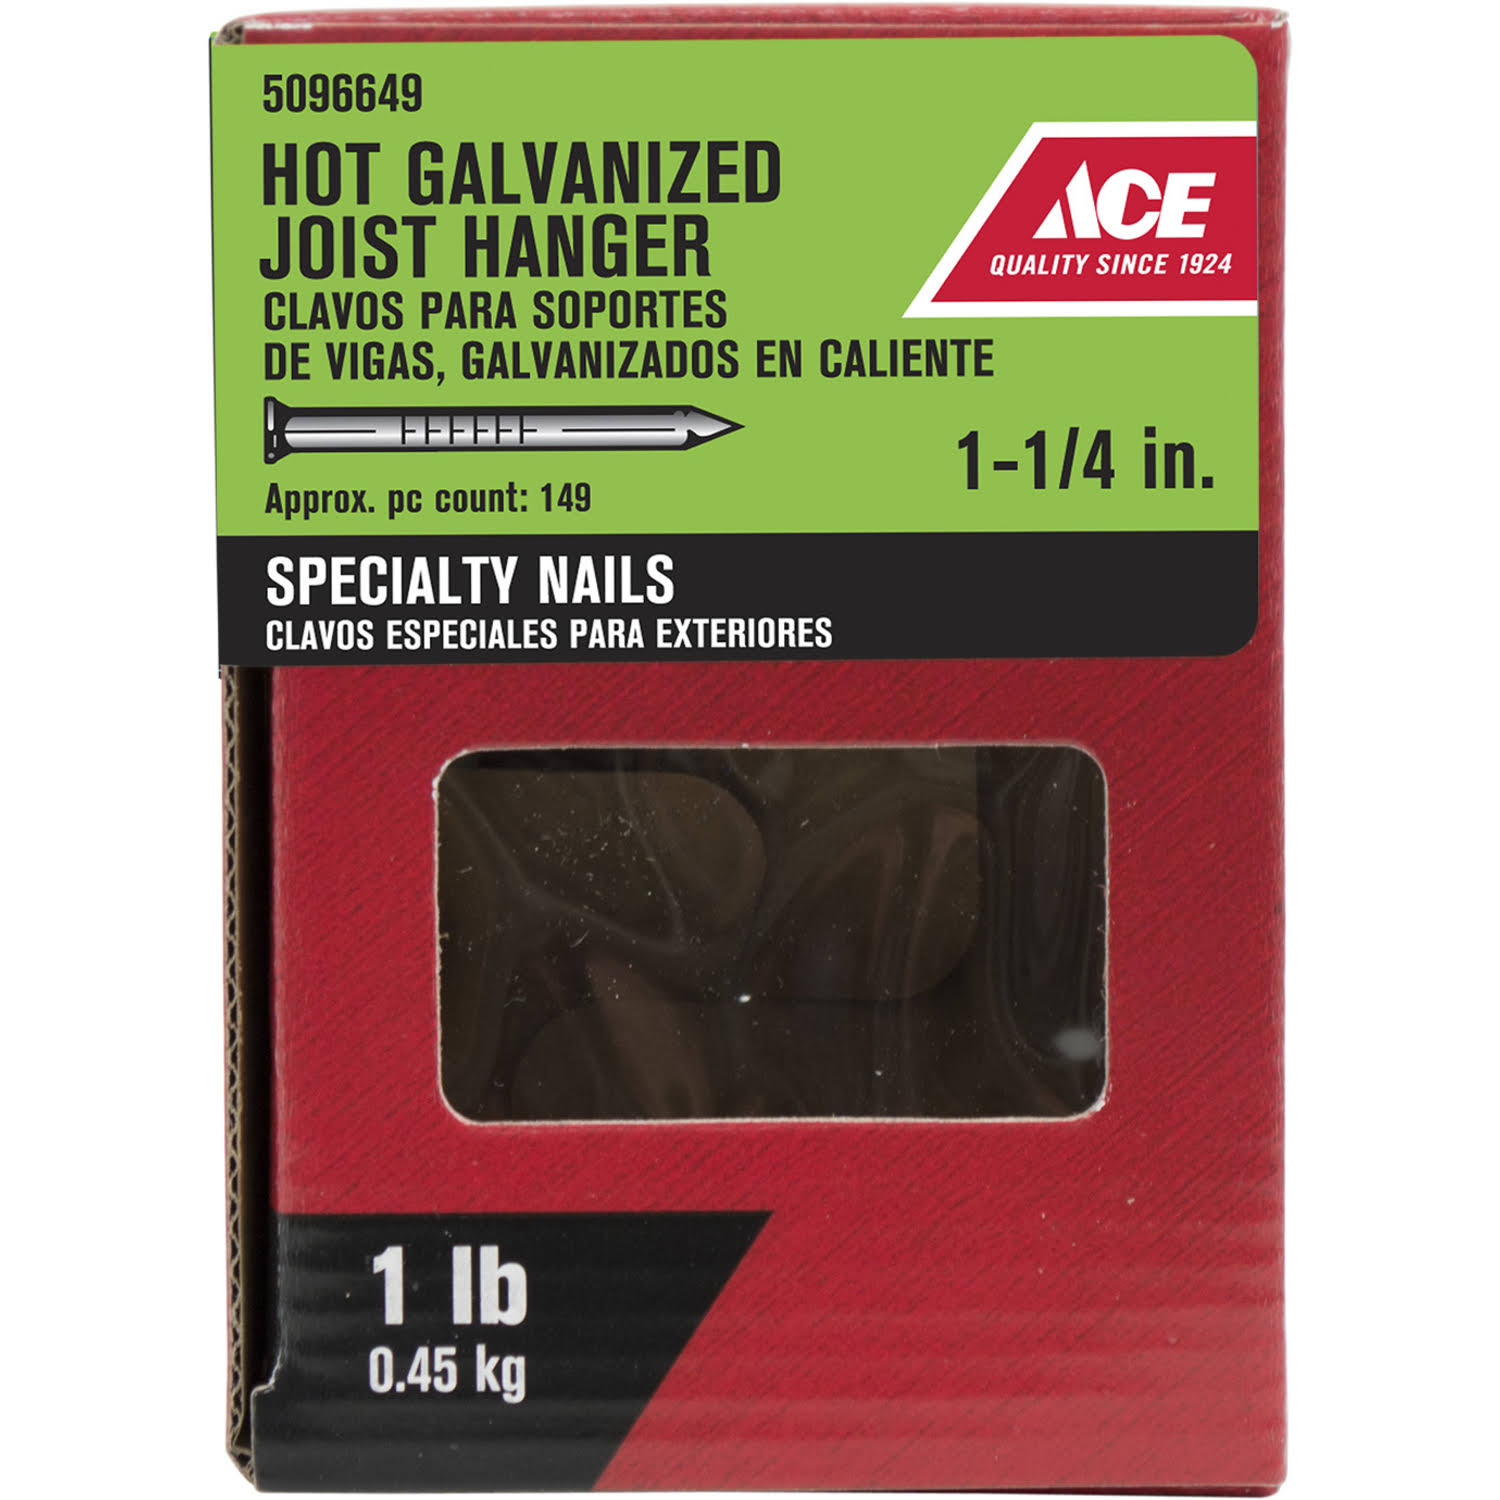 Ace Hanger NAIL1-1/4 inch 1# 5096649